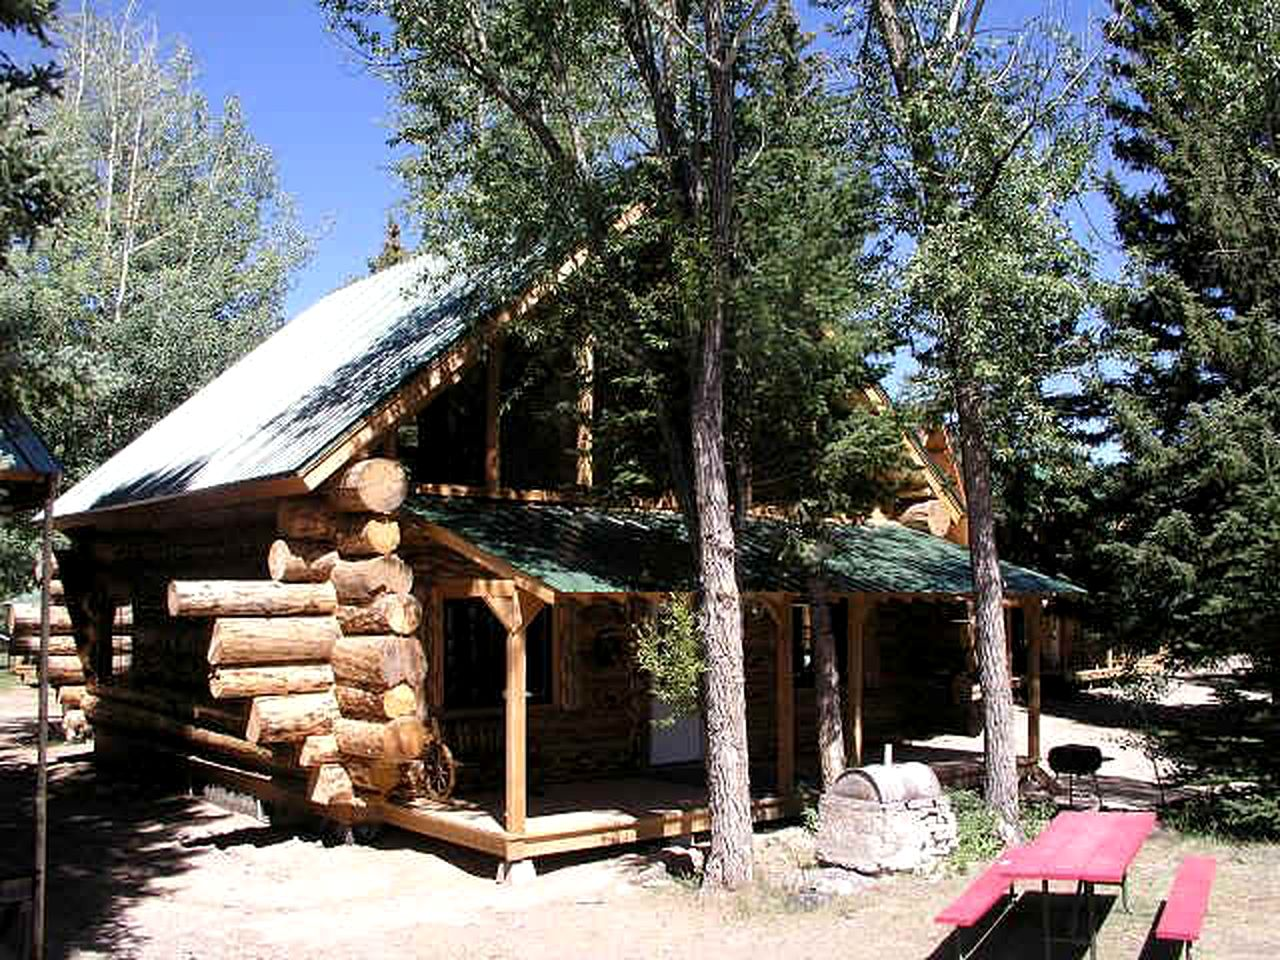 Log Cabins (Lake City, Colorado, United States)